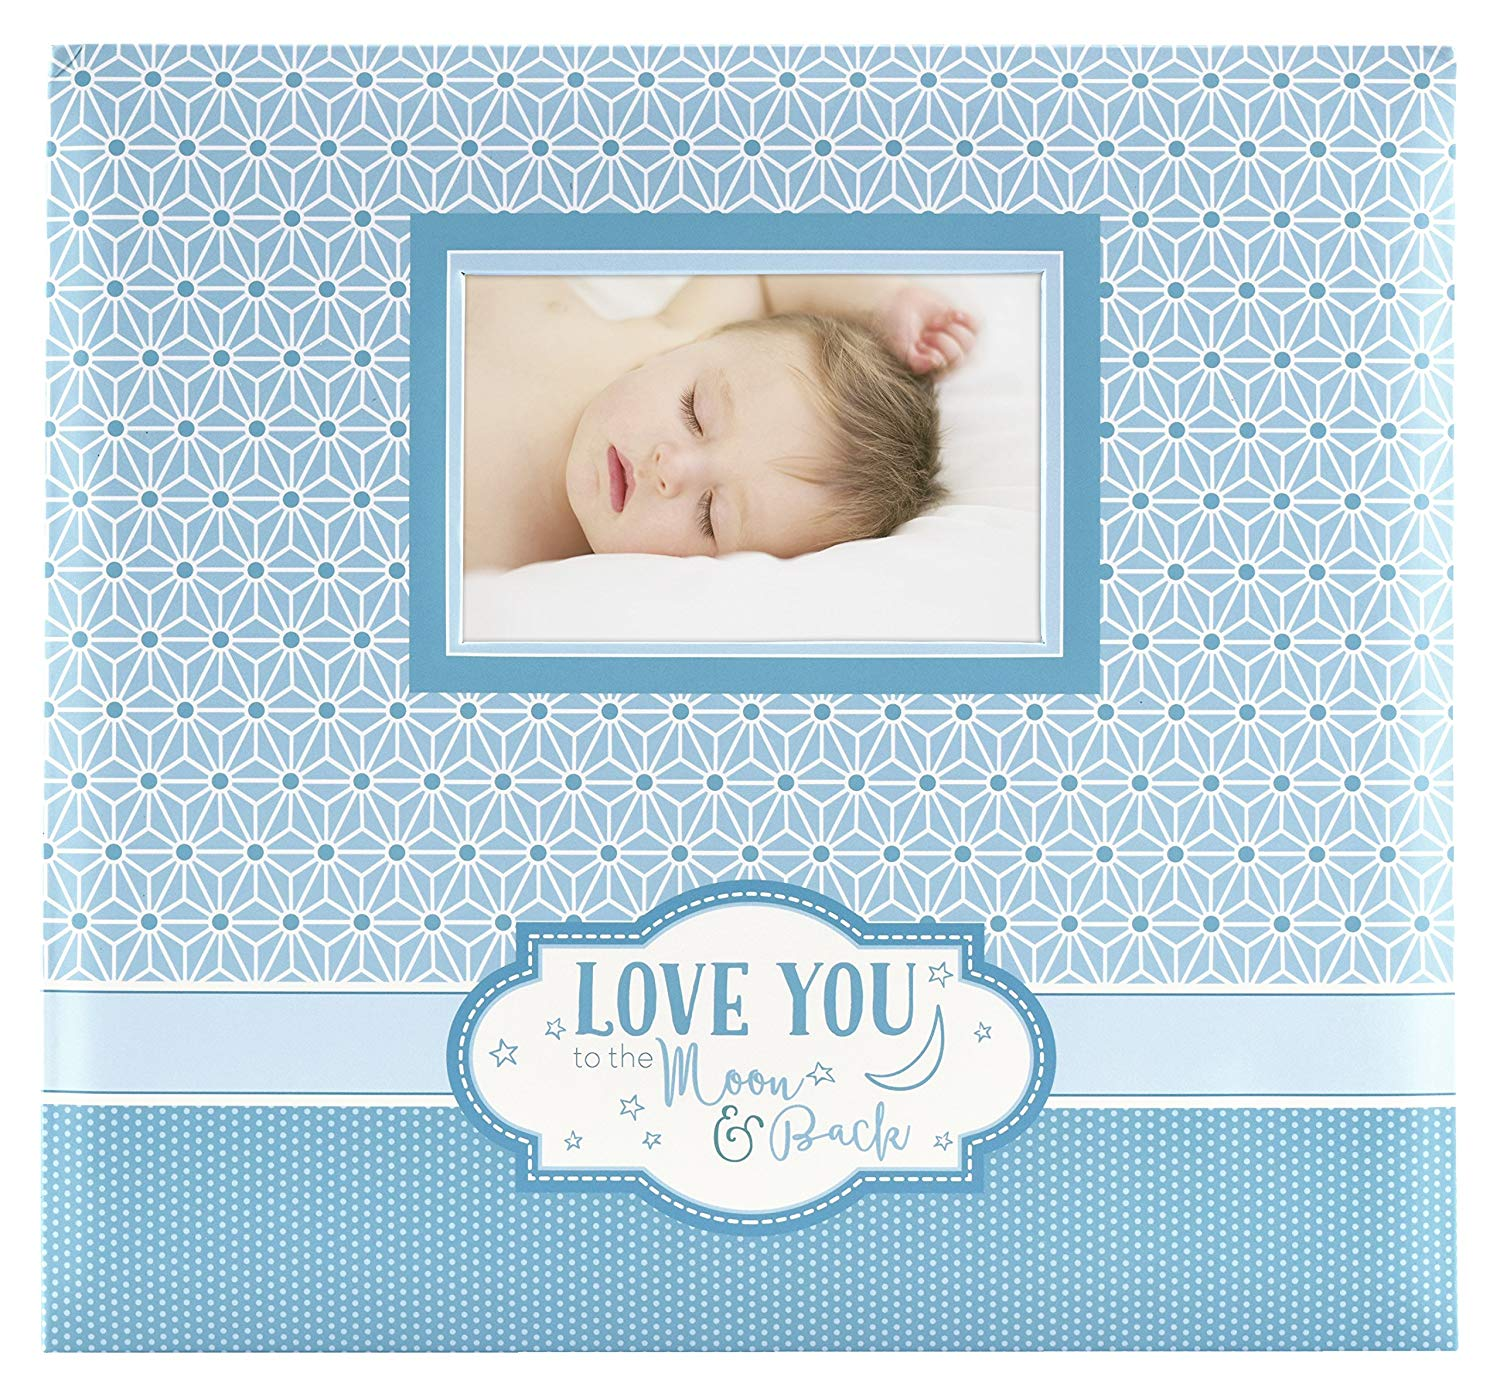 850033 MCS MBI 13.5x12.5 Inch Baby Theme Scrapbook Album with 12x12 Inch Pages with Photo Opening Pink